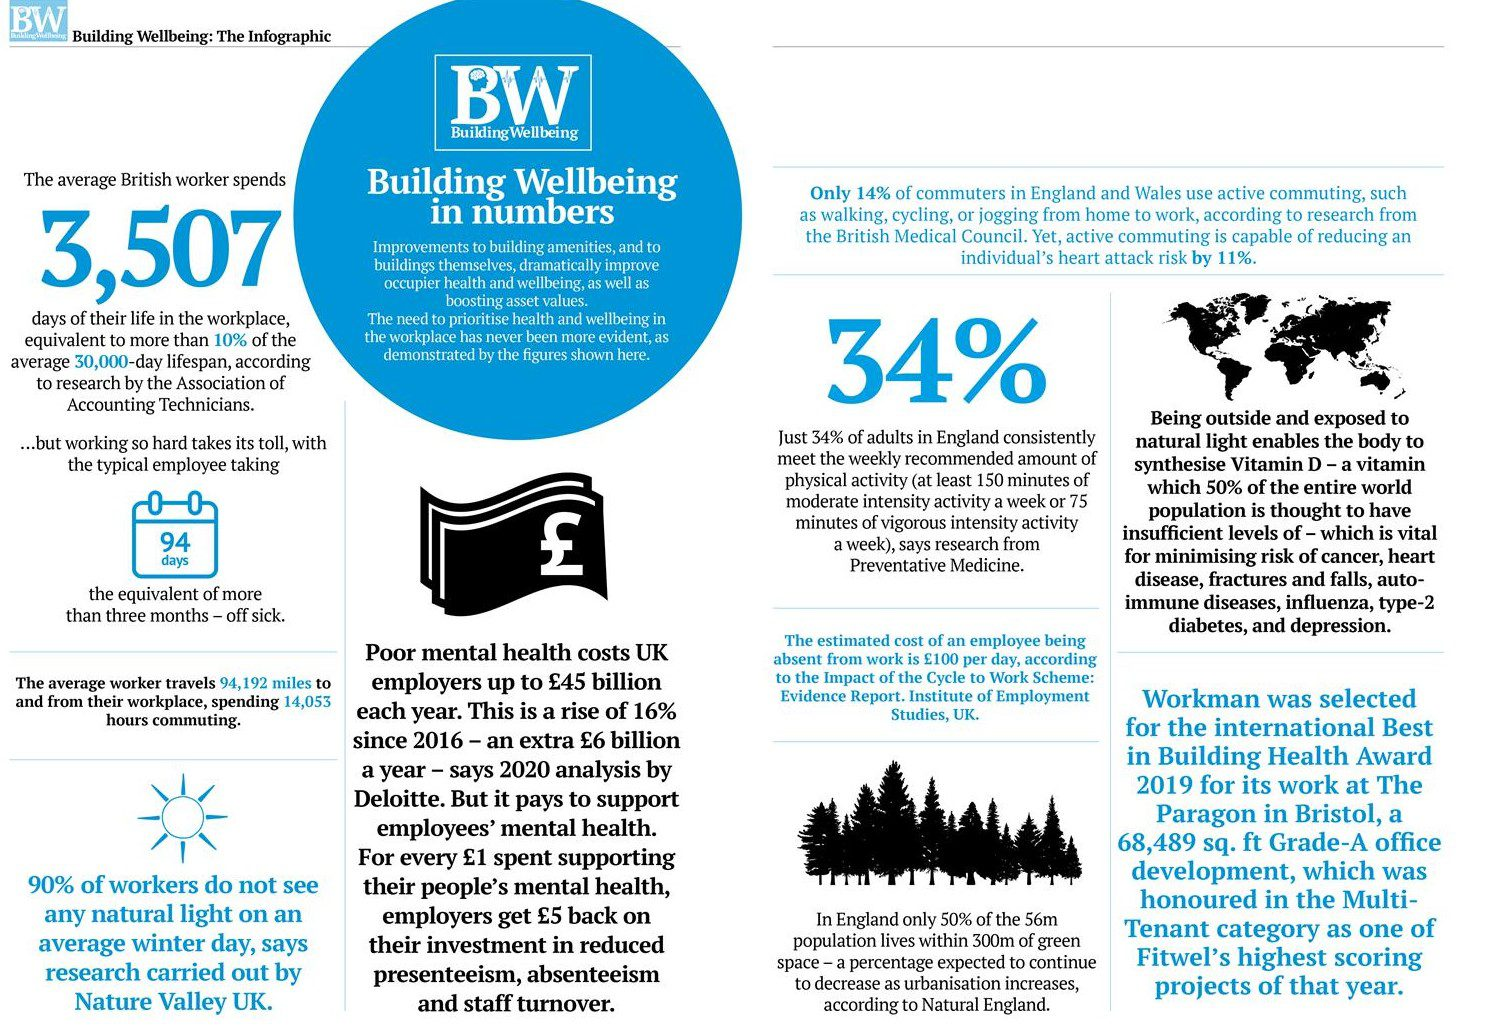 Infographic on Building Wellbeing